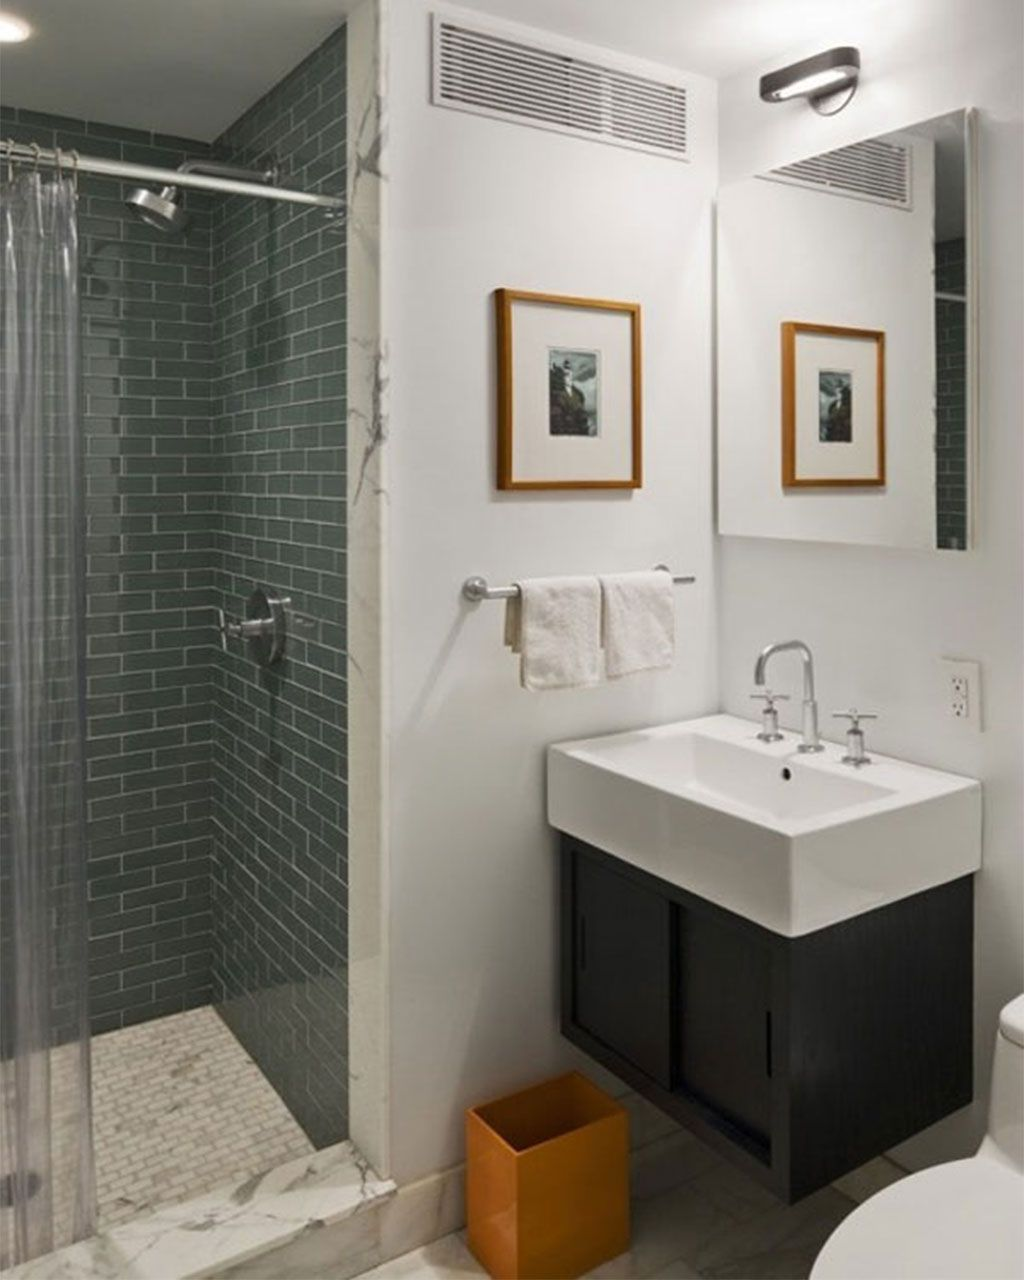 Stylish Grey Tile Wall in Cozy Shower Area near Floating Vanity inside Small  Bathroom Design Ideas